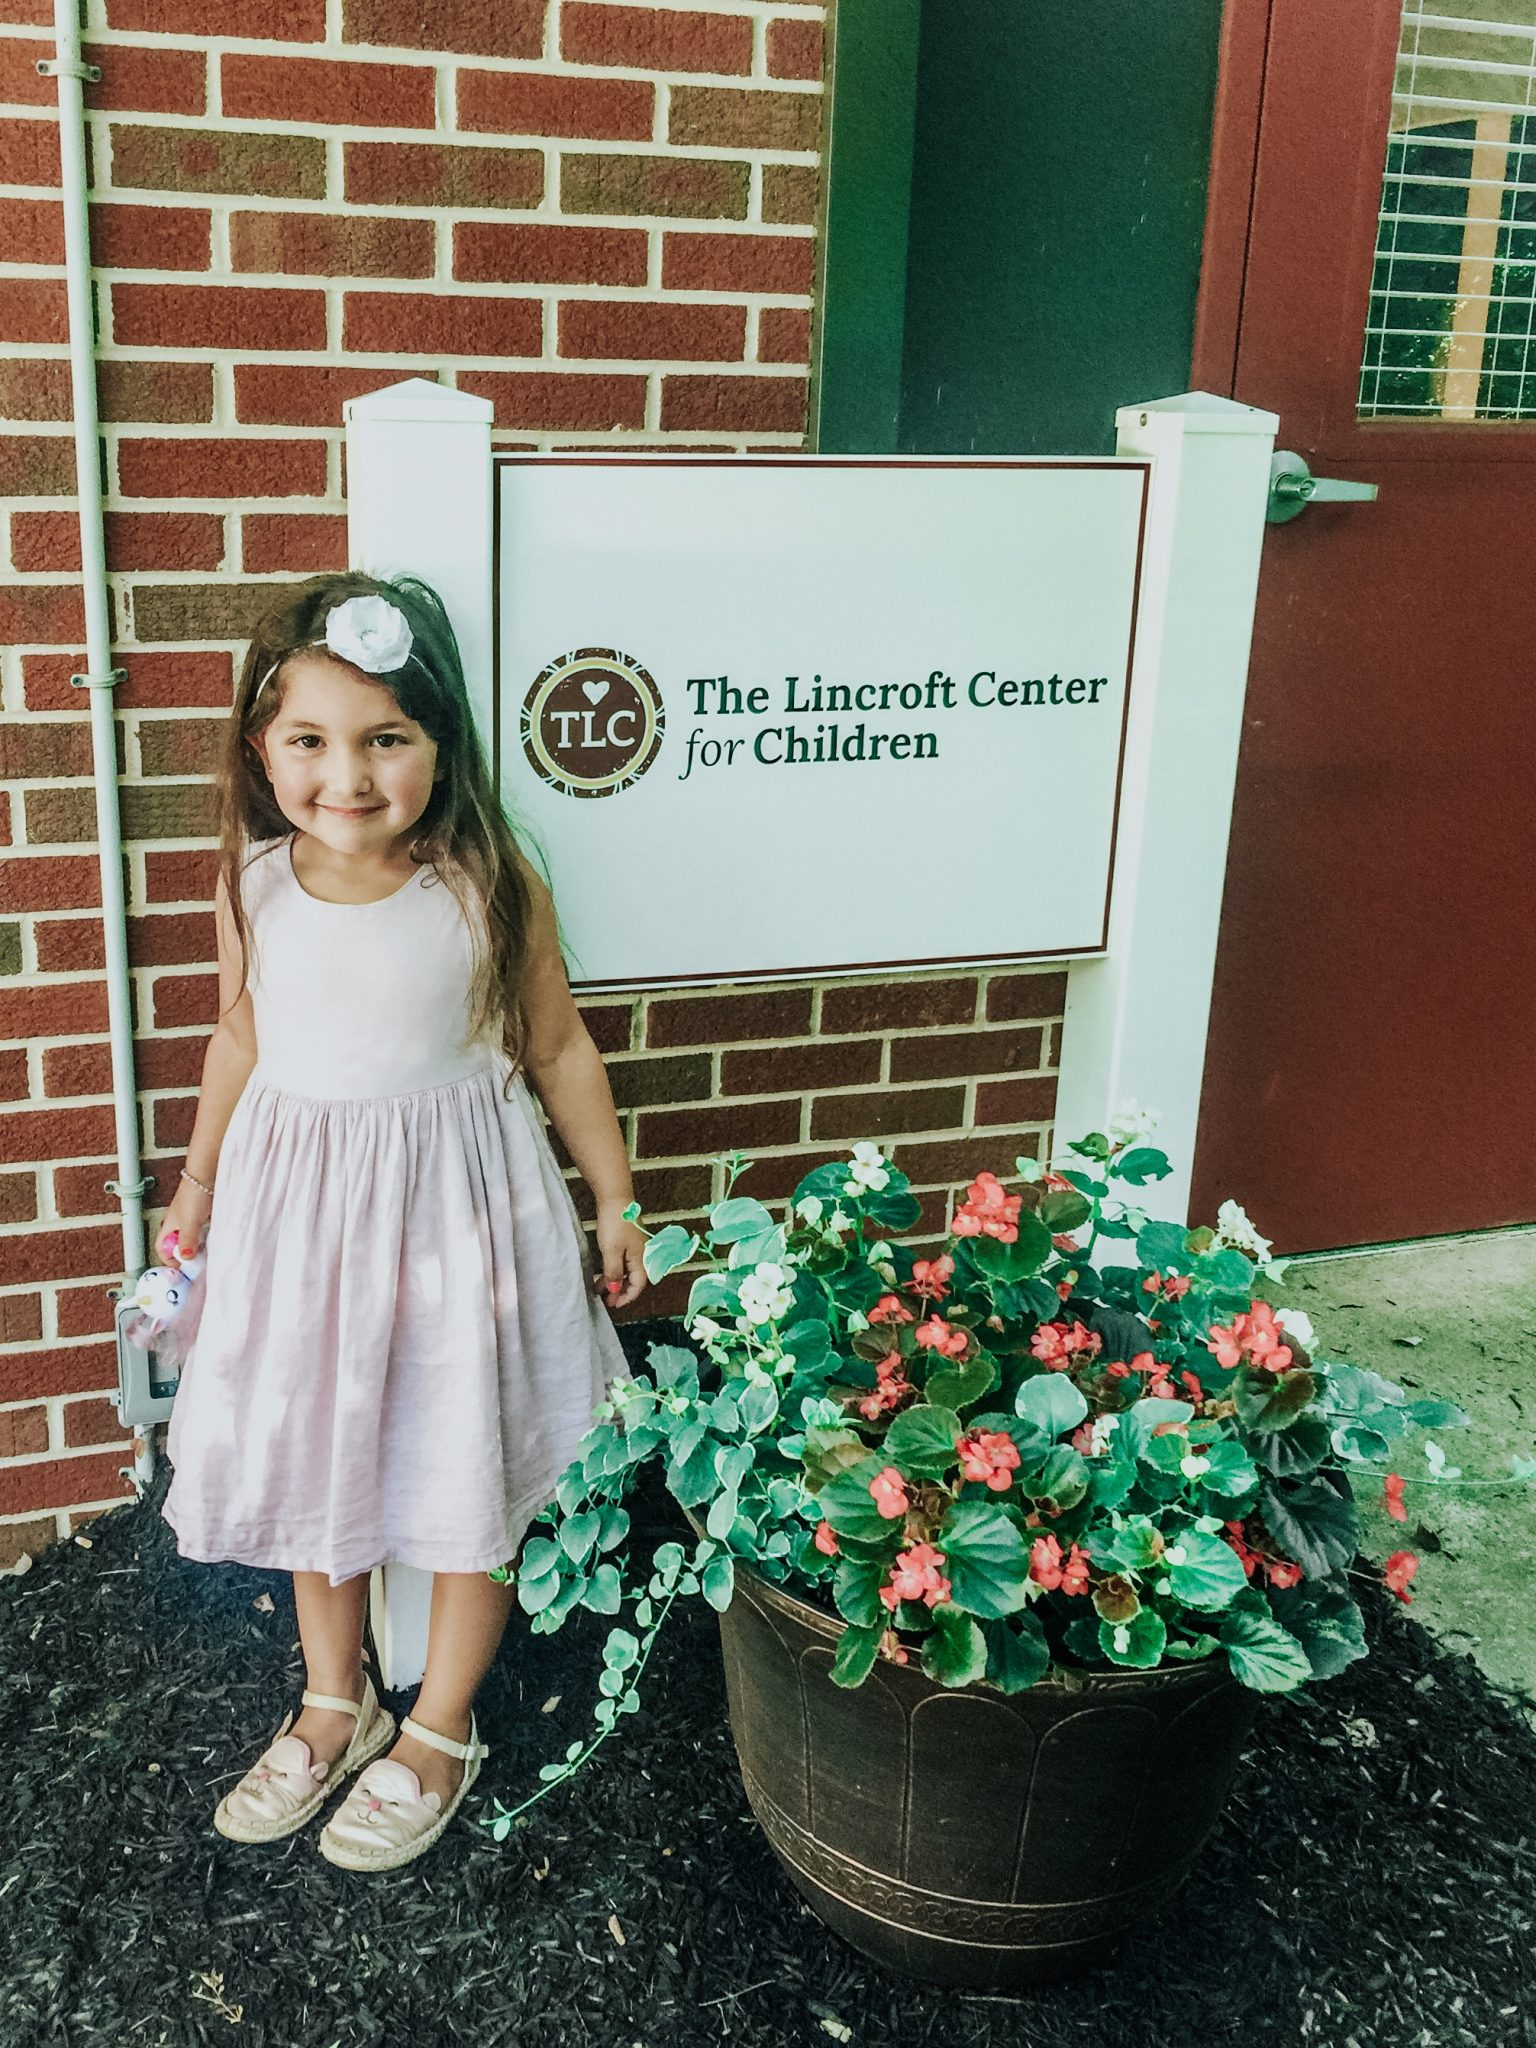 Top New Jersey lifestyle blog, House of Leo, honors the daycare mom and shares their thoughts on the difficult decision to make to go back to work: image of the lincroft center for children